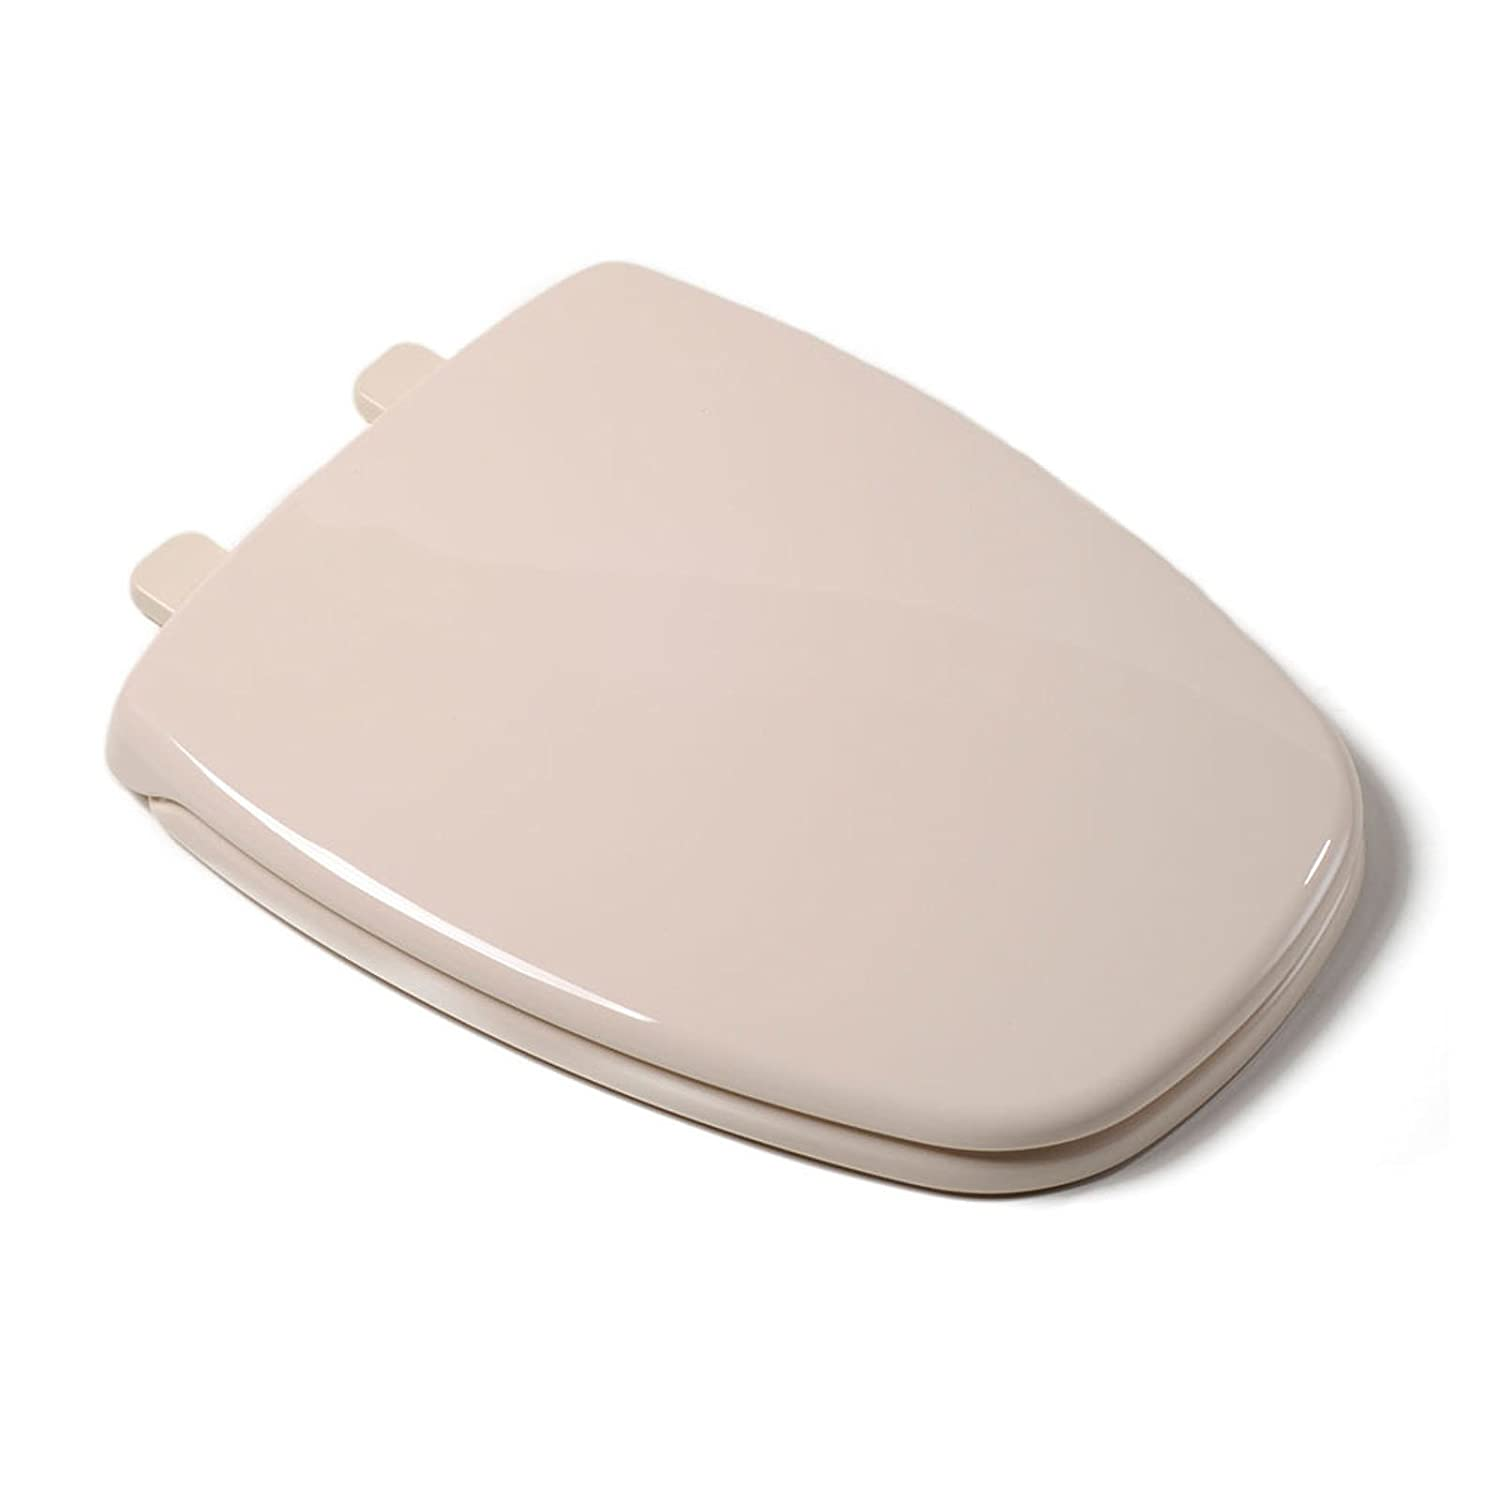 Delightful Comfort Seats C1050S01 Plastic Ez Close Elongated Square Front With Cover   Toilet  Seats   Amazon.com